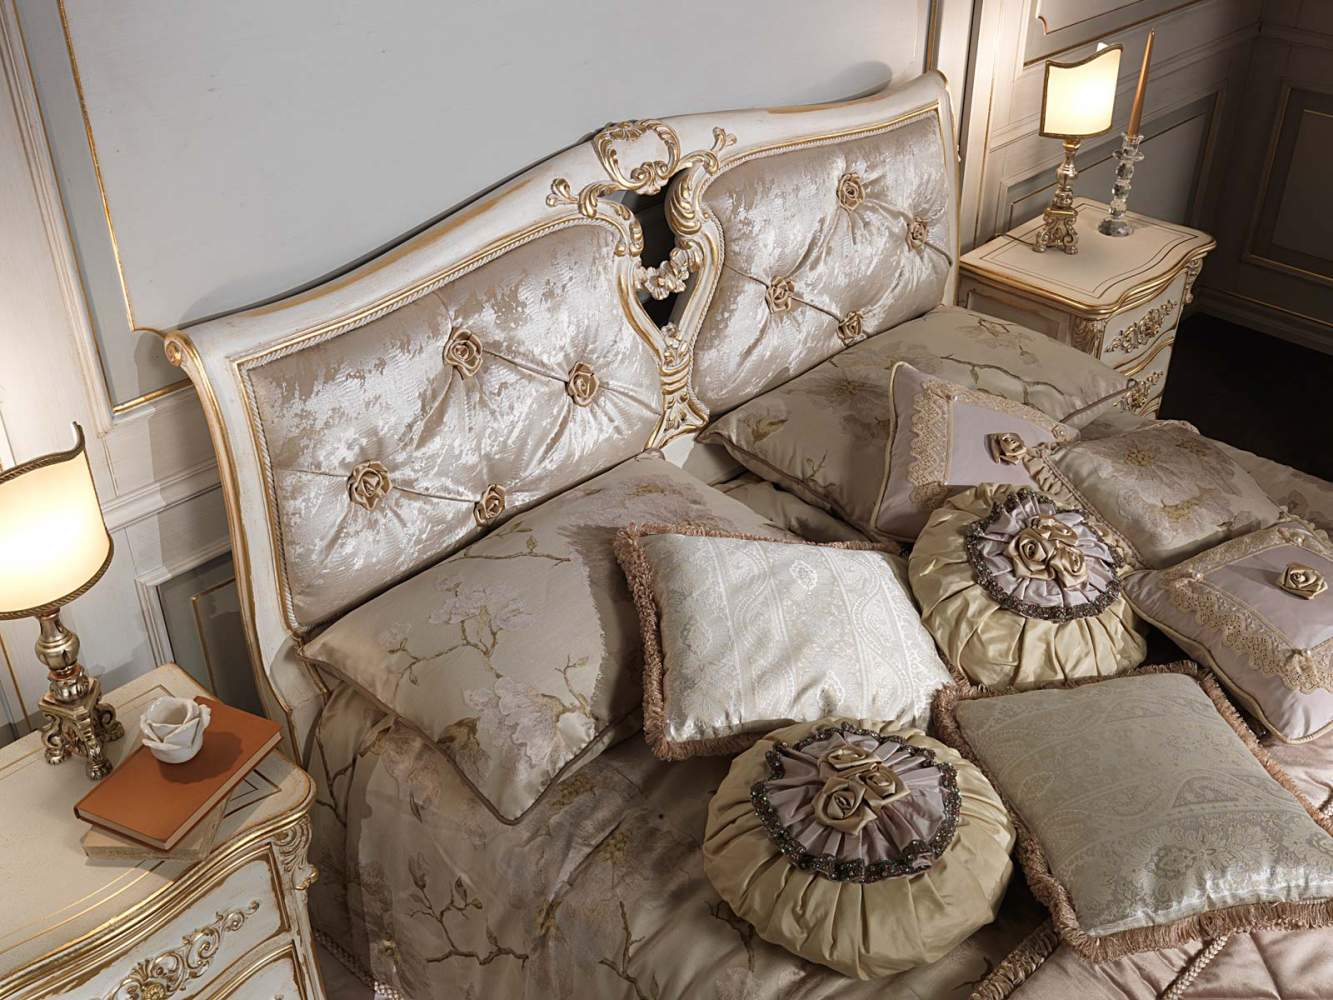 Classic Louis XVI bedroom, capitonnè bed, cnight tables, themed sheets and pillows